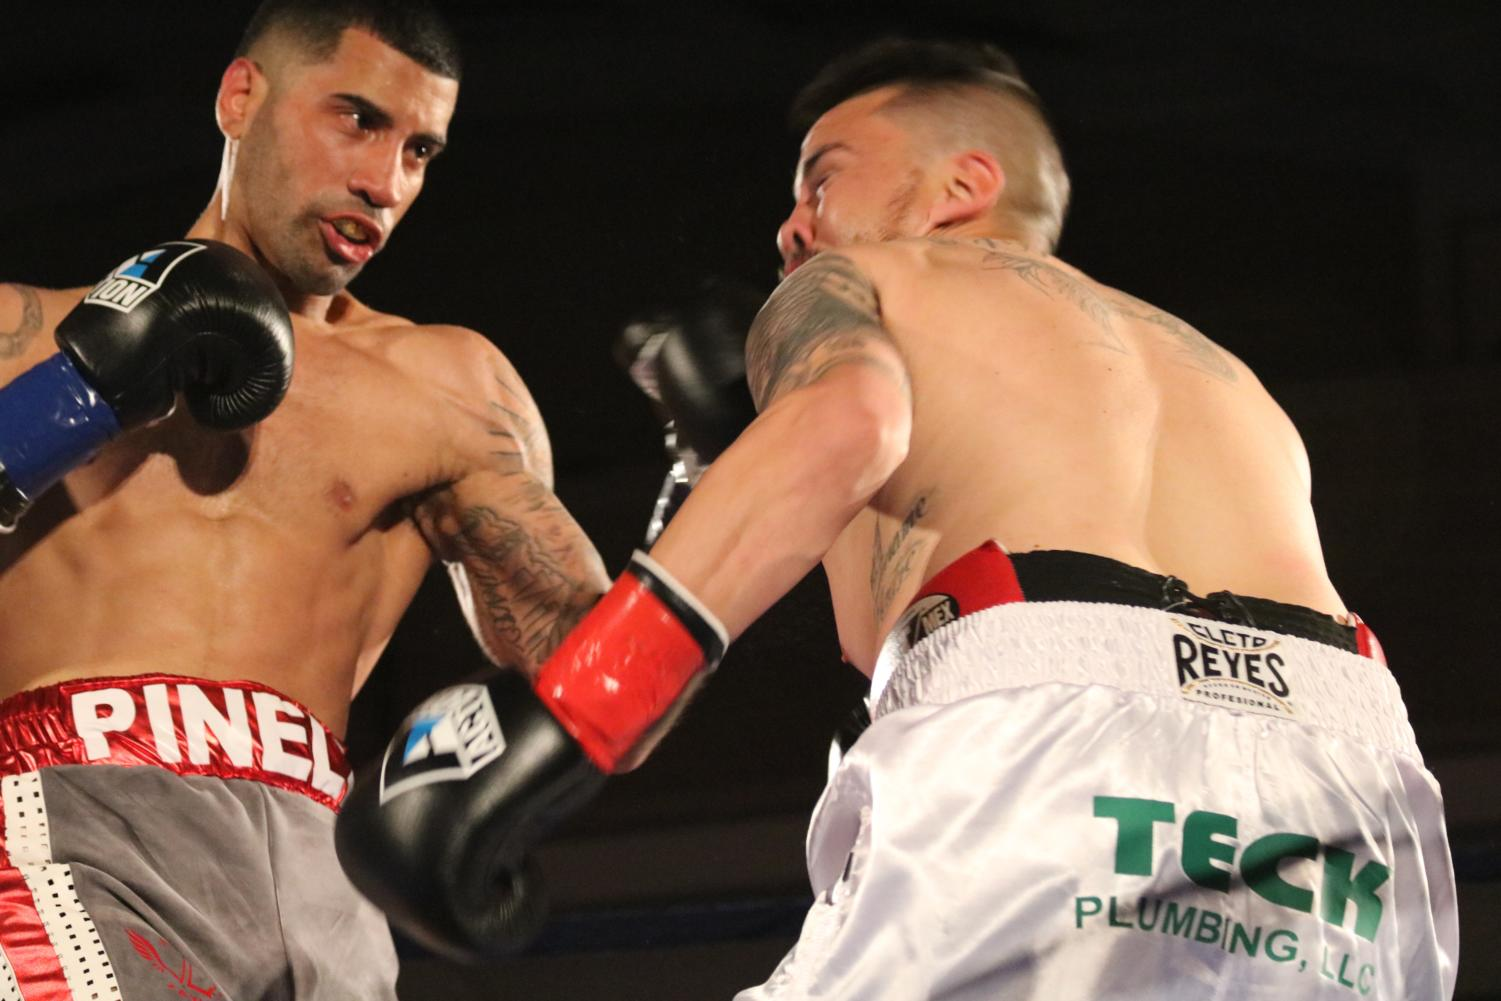 Ricardo Pinell (left) connects with a left hook against Enrique Gallegos (right) in the first round of their bout at the Battle of the Ballroom in San Francisco April 7.